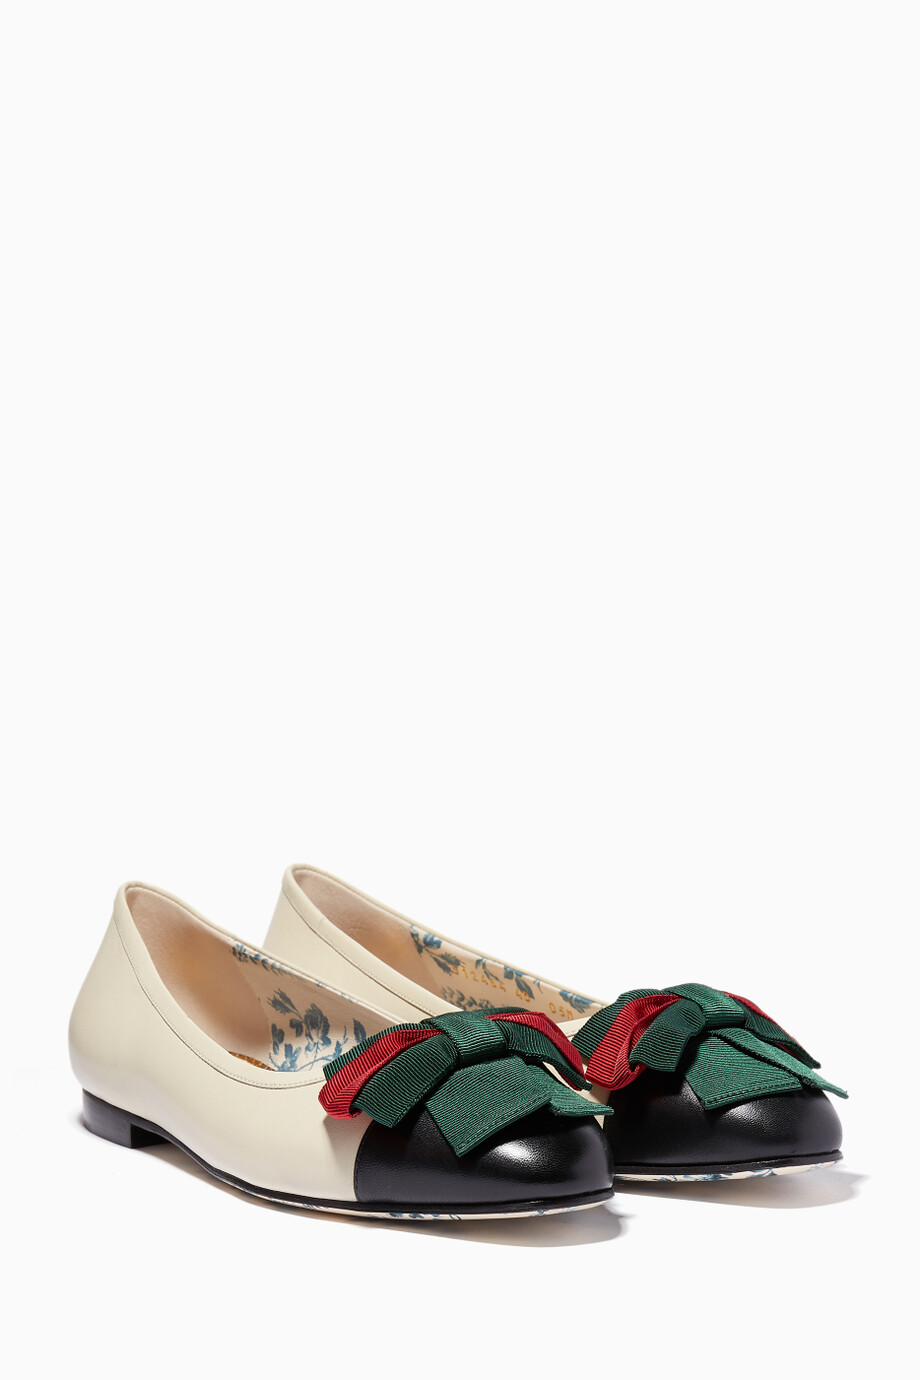 926a9720f Shop Gucci White Off-White Web Bow Ballet Flats for Women